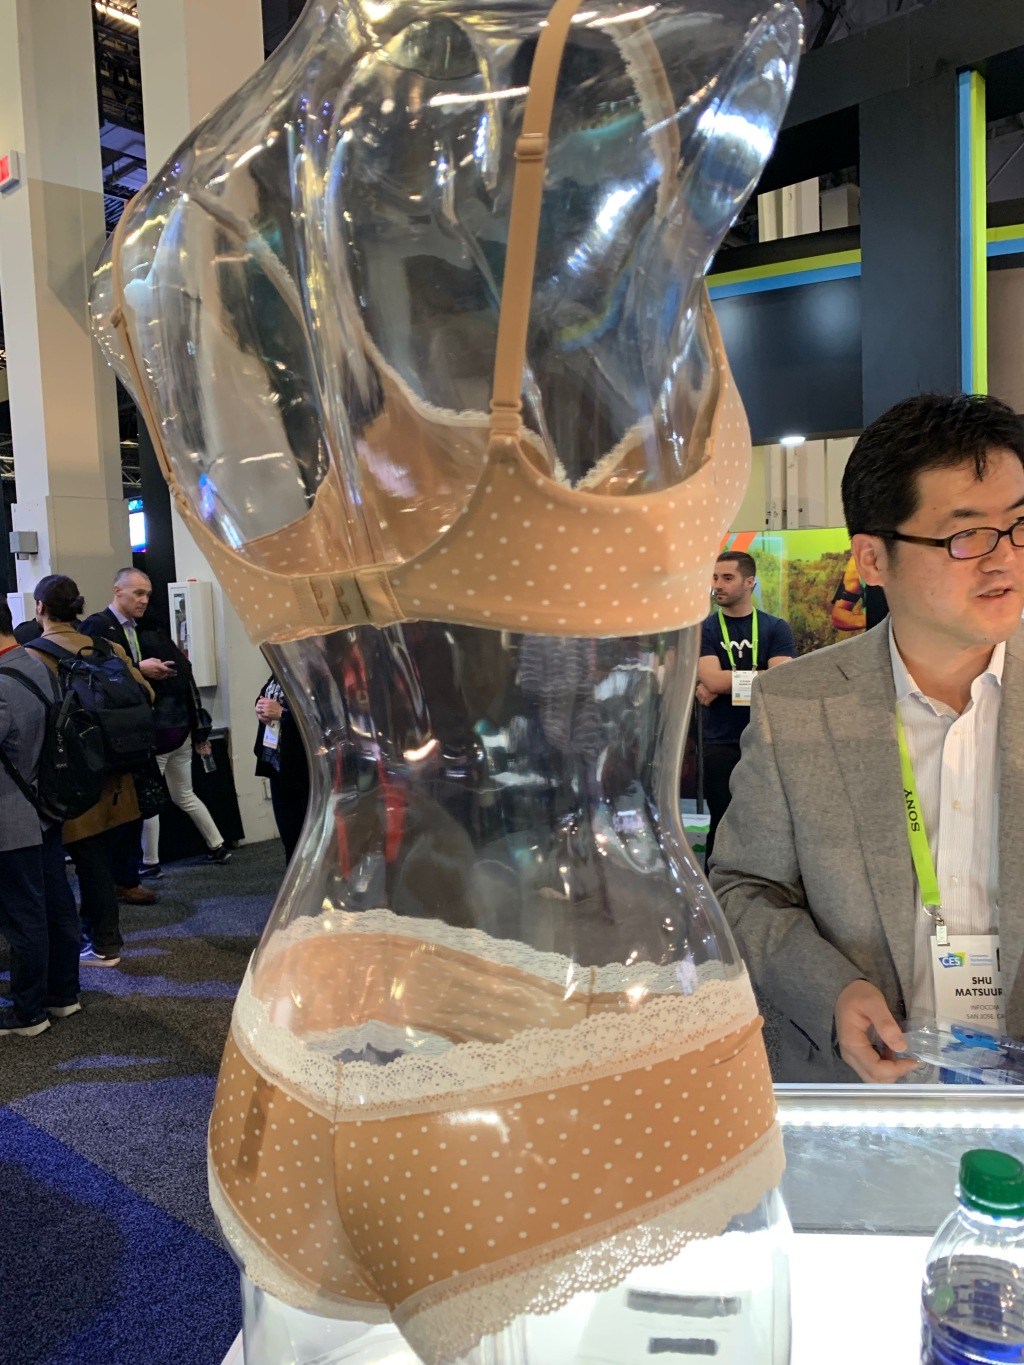 CES 2019 was where wearables lost all shame and aimed for